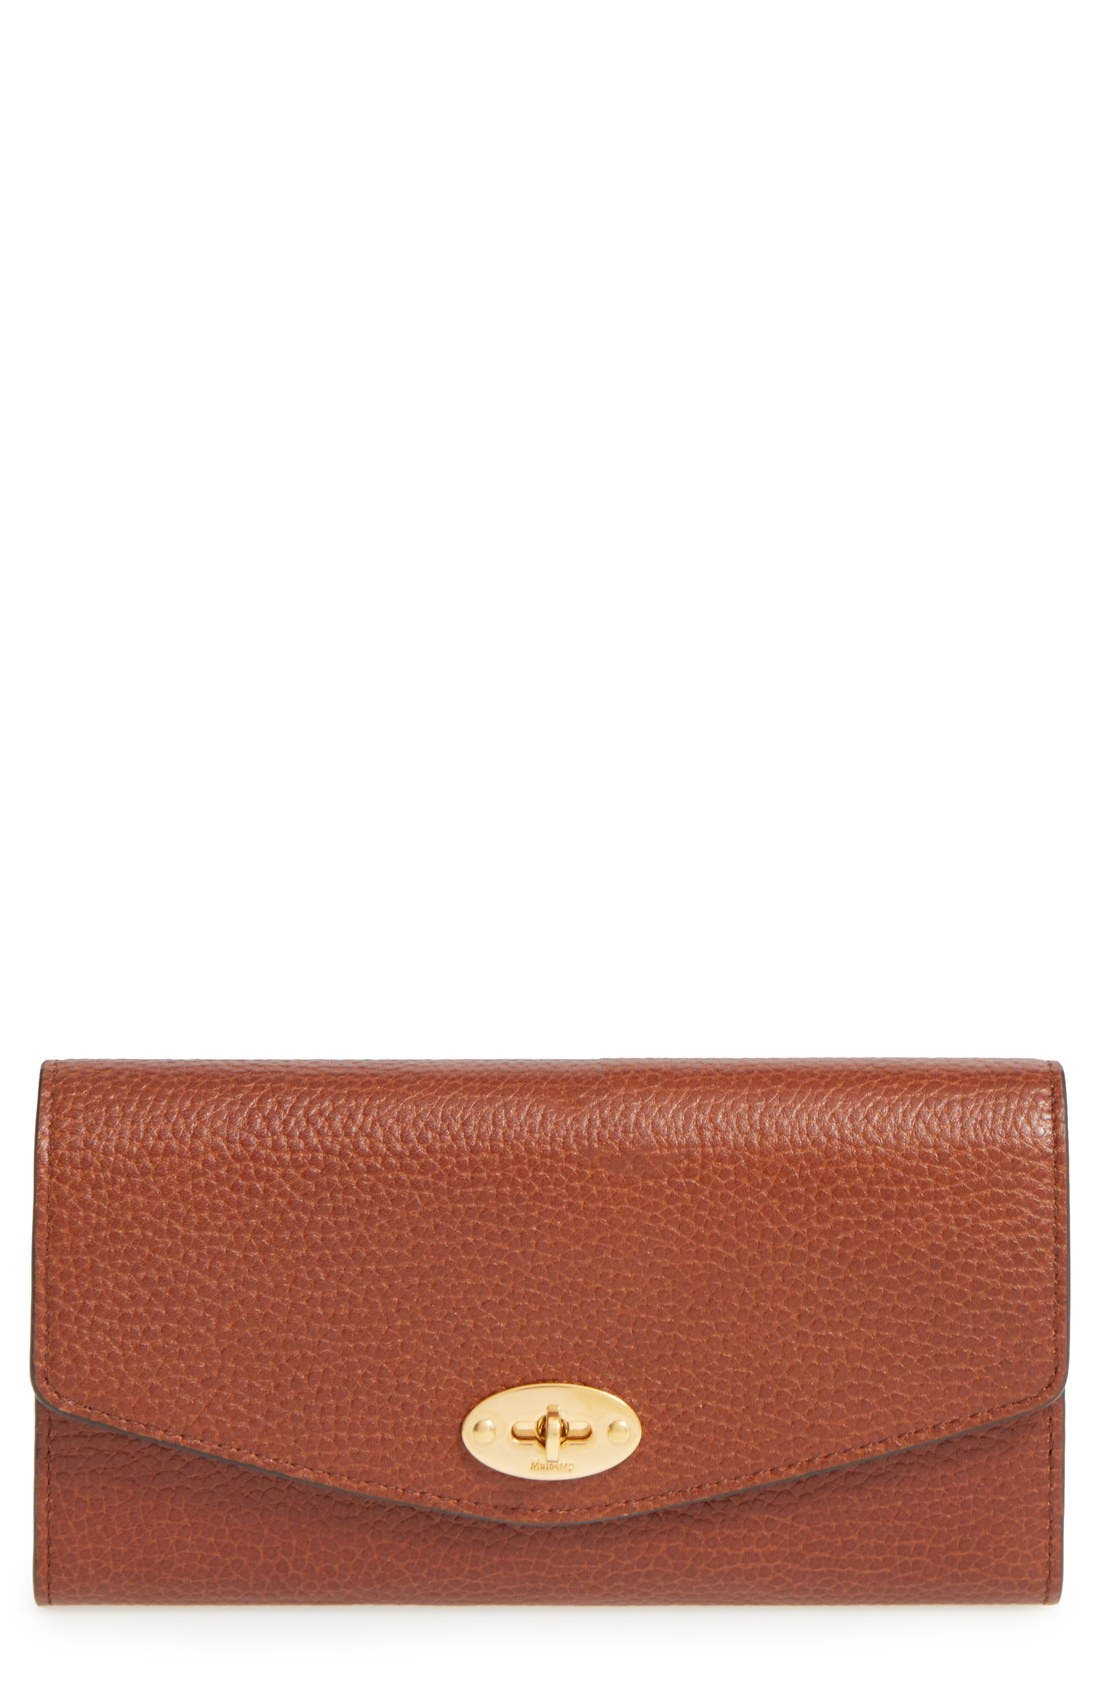 Main Image - Mulberry 'Postman's Lock' Leather Wallet